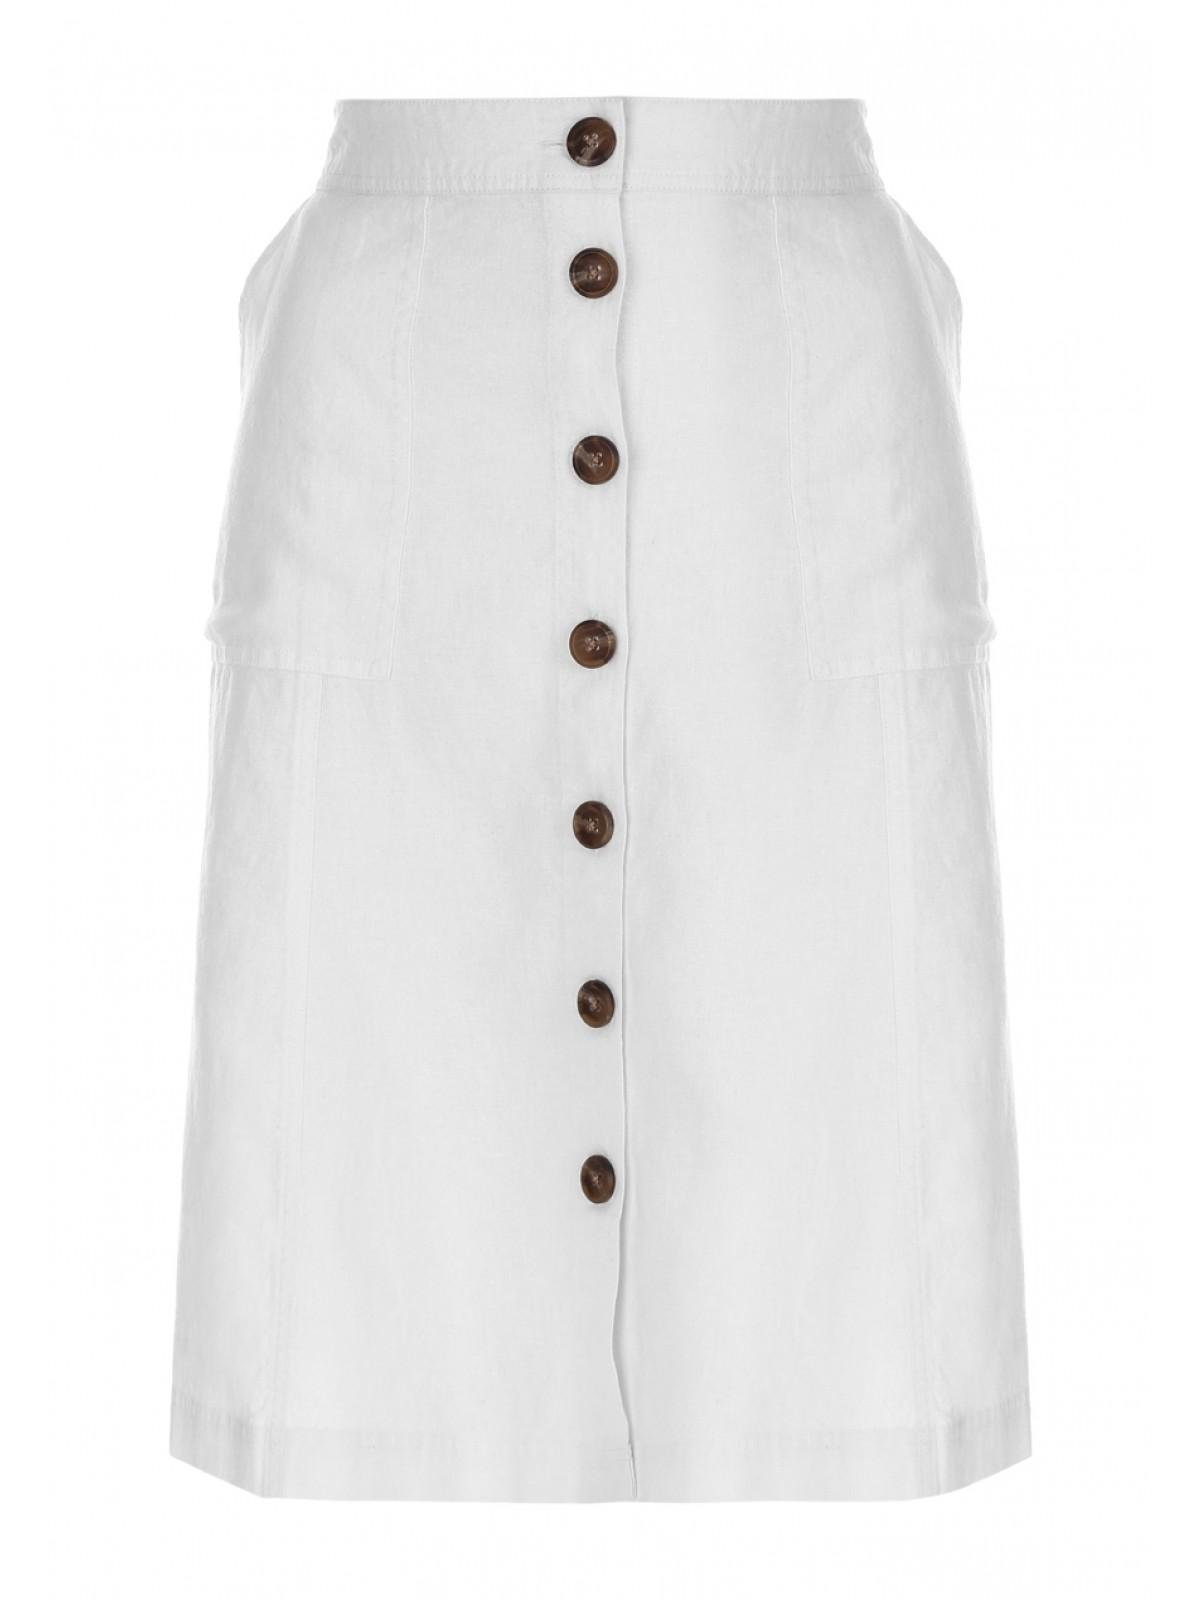 090bc3a55f6e Home; Womens White Linen Button Up Skirt. Back. PreviousNext